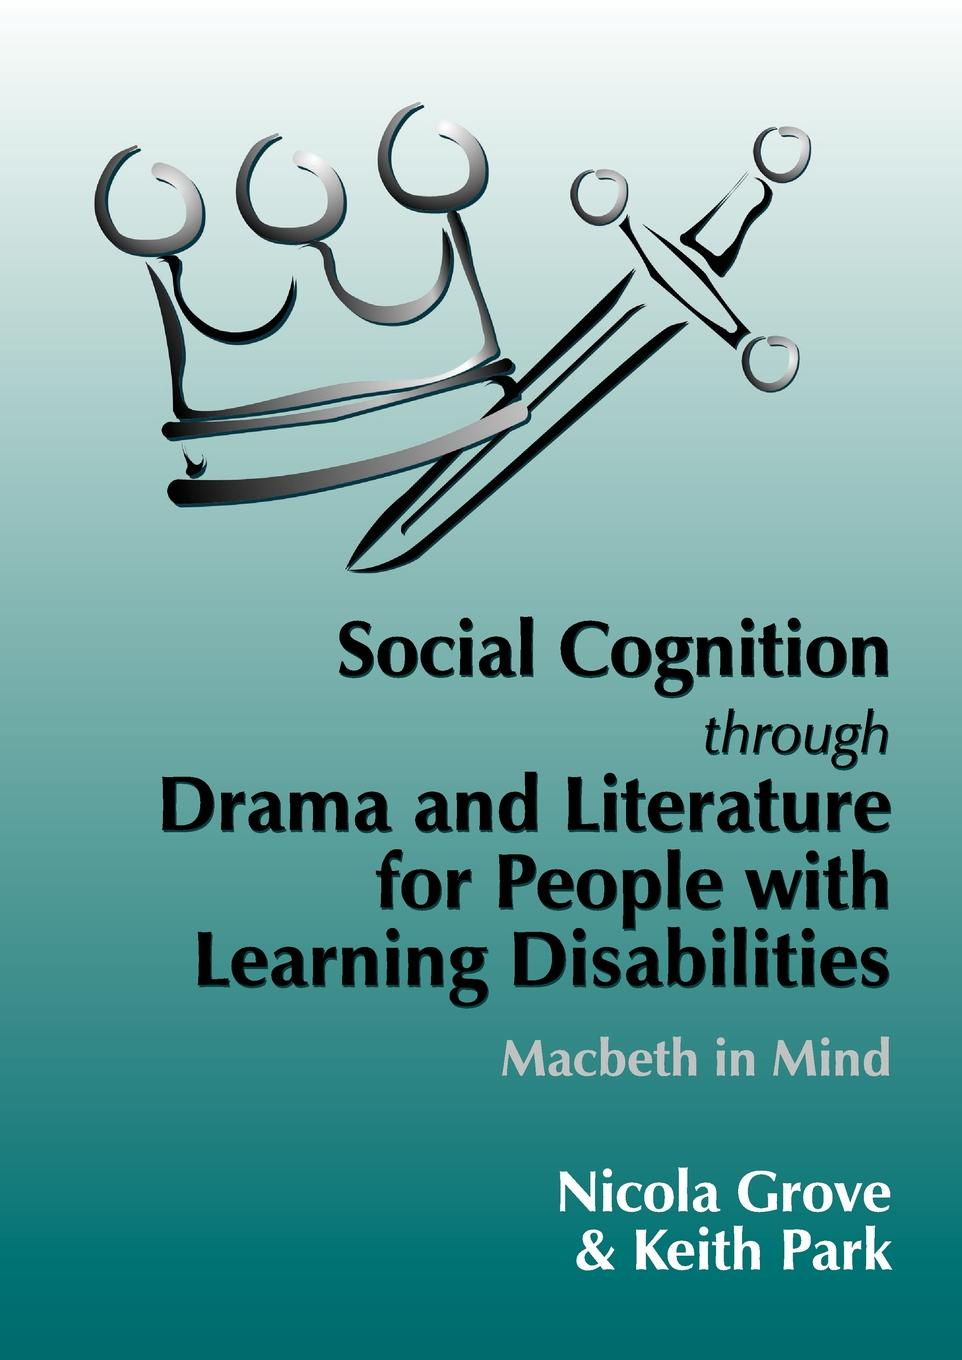 Nicola Grove, Keith Park Social Cognition Through Drama and Literature for People with Learning Disabilities